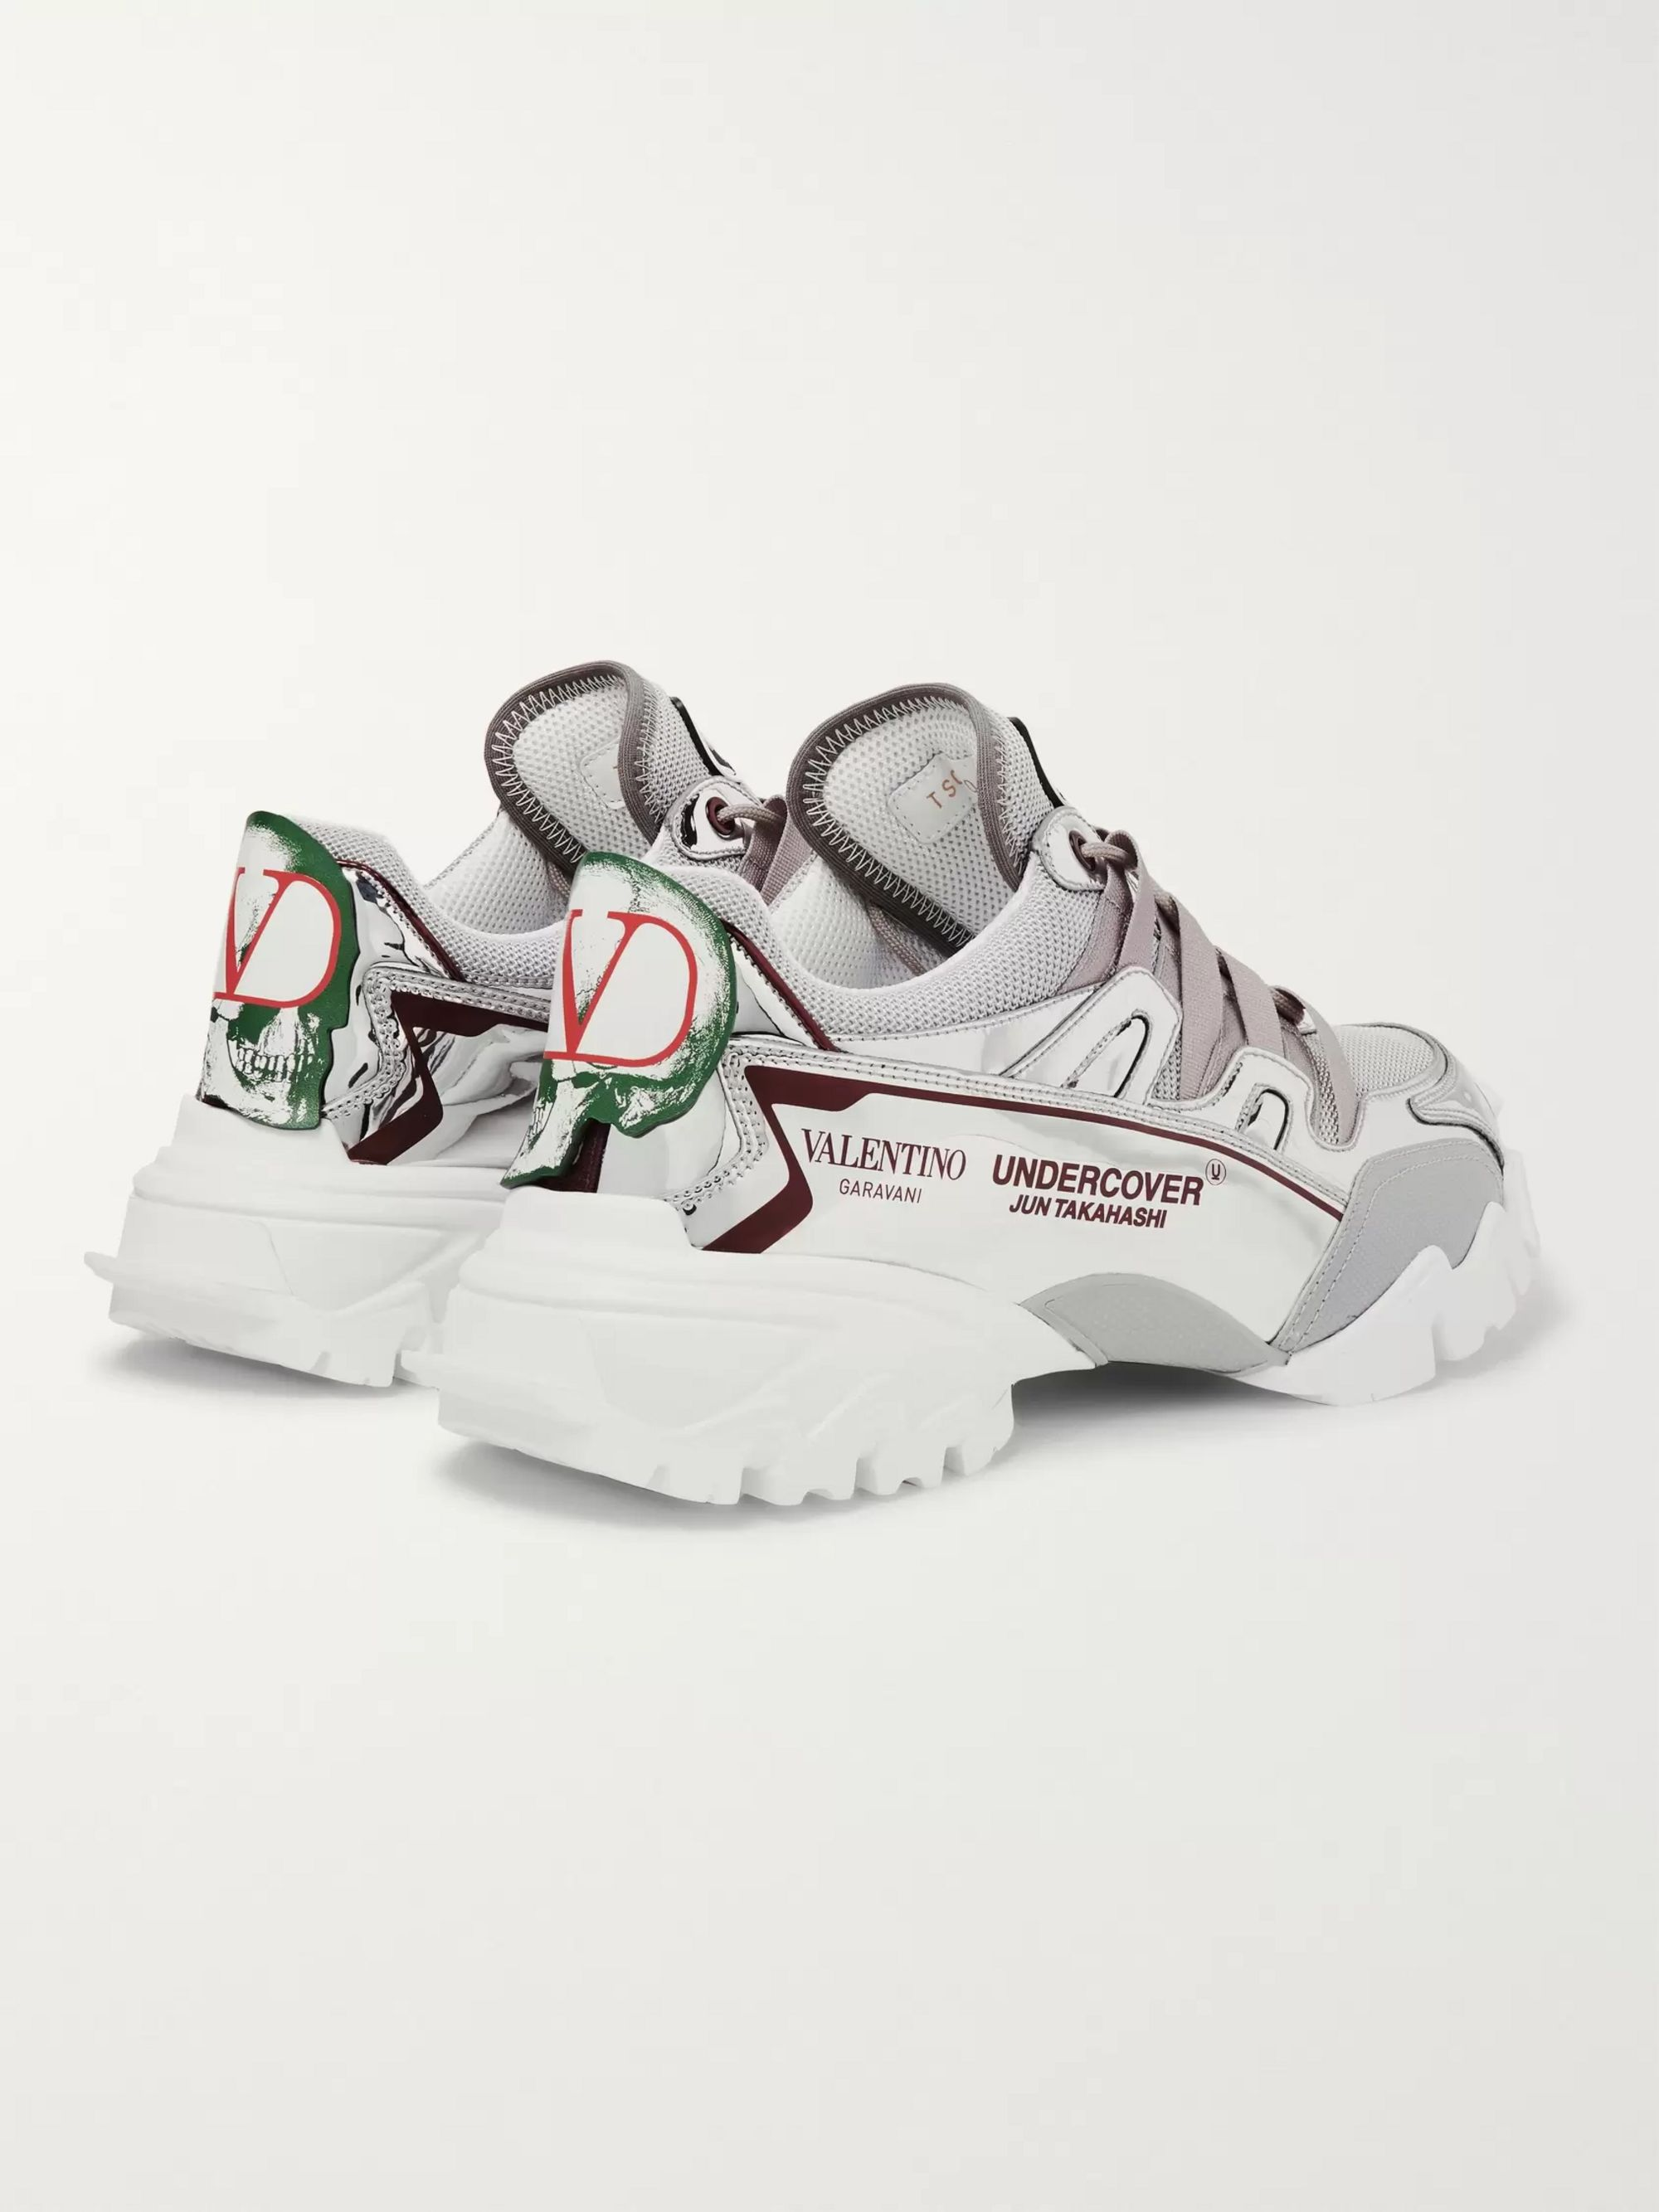 Valentino + Undercover Valentino Garavani Climbers Mesh, Leather and Rubber Sneakers